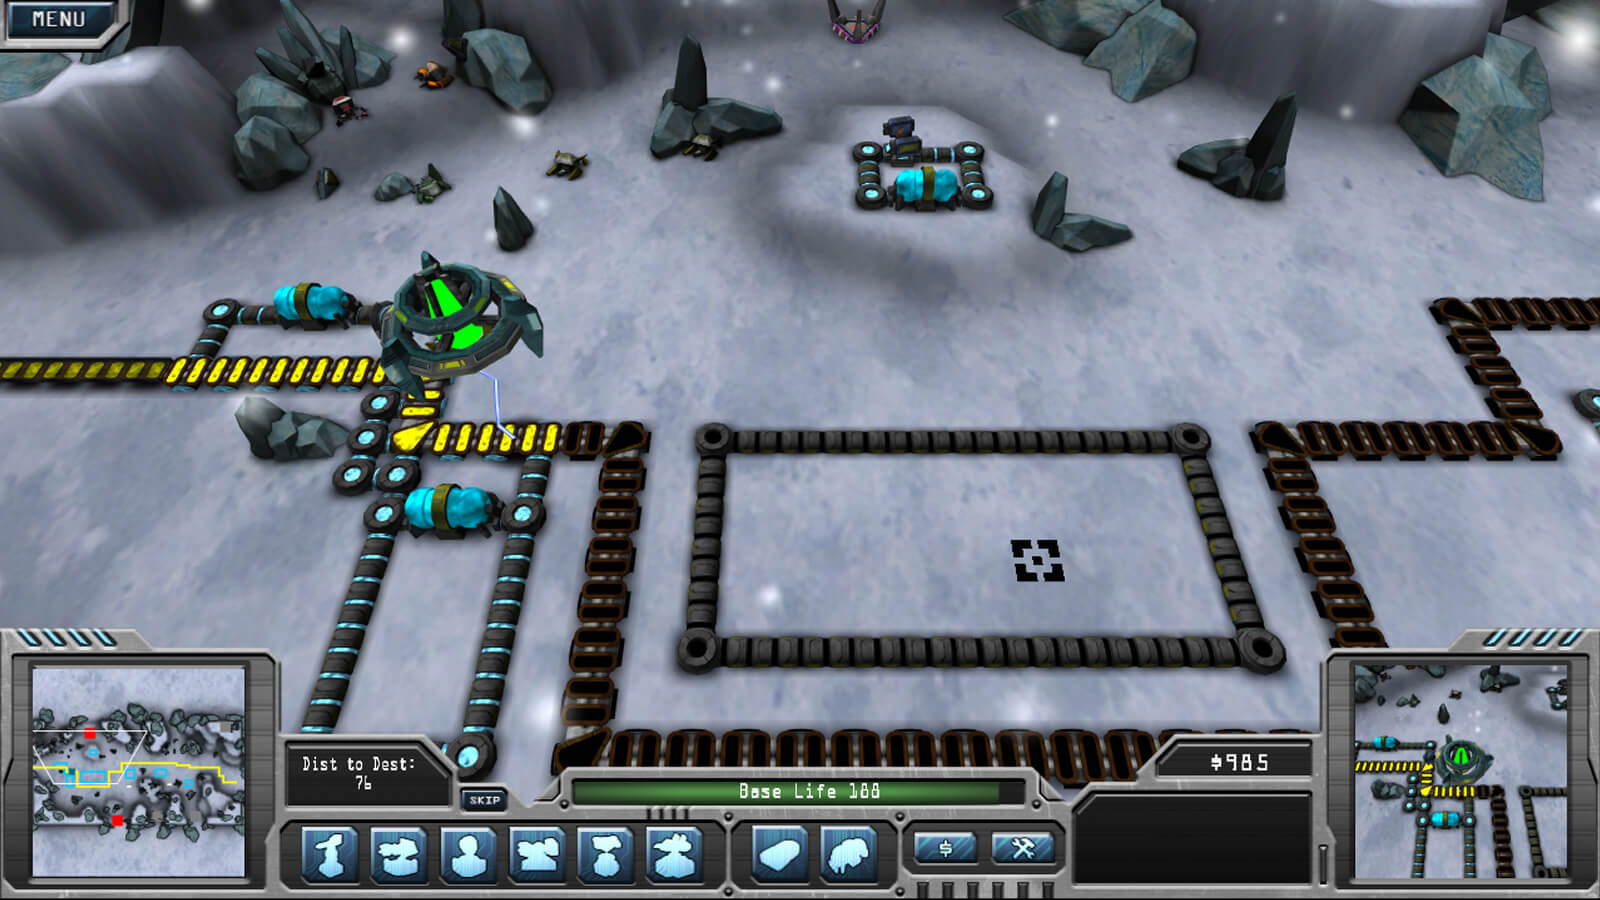 Full view of game and HUD including mini map and building options. The player's ship hovers over the defenses.